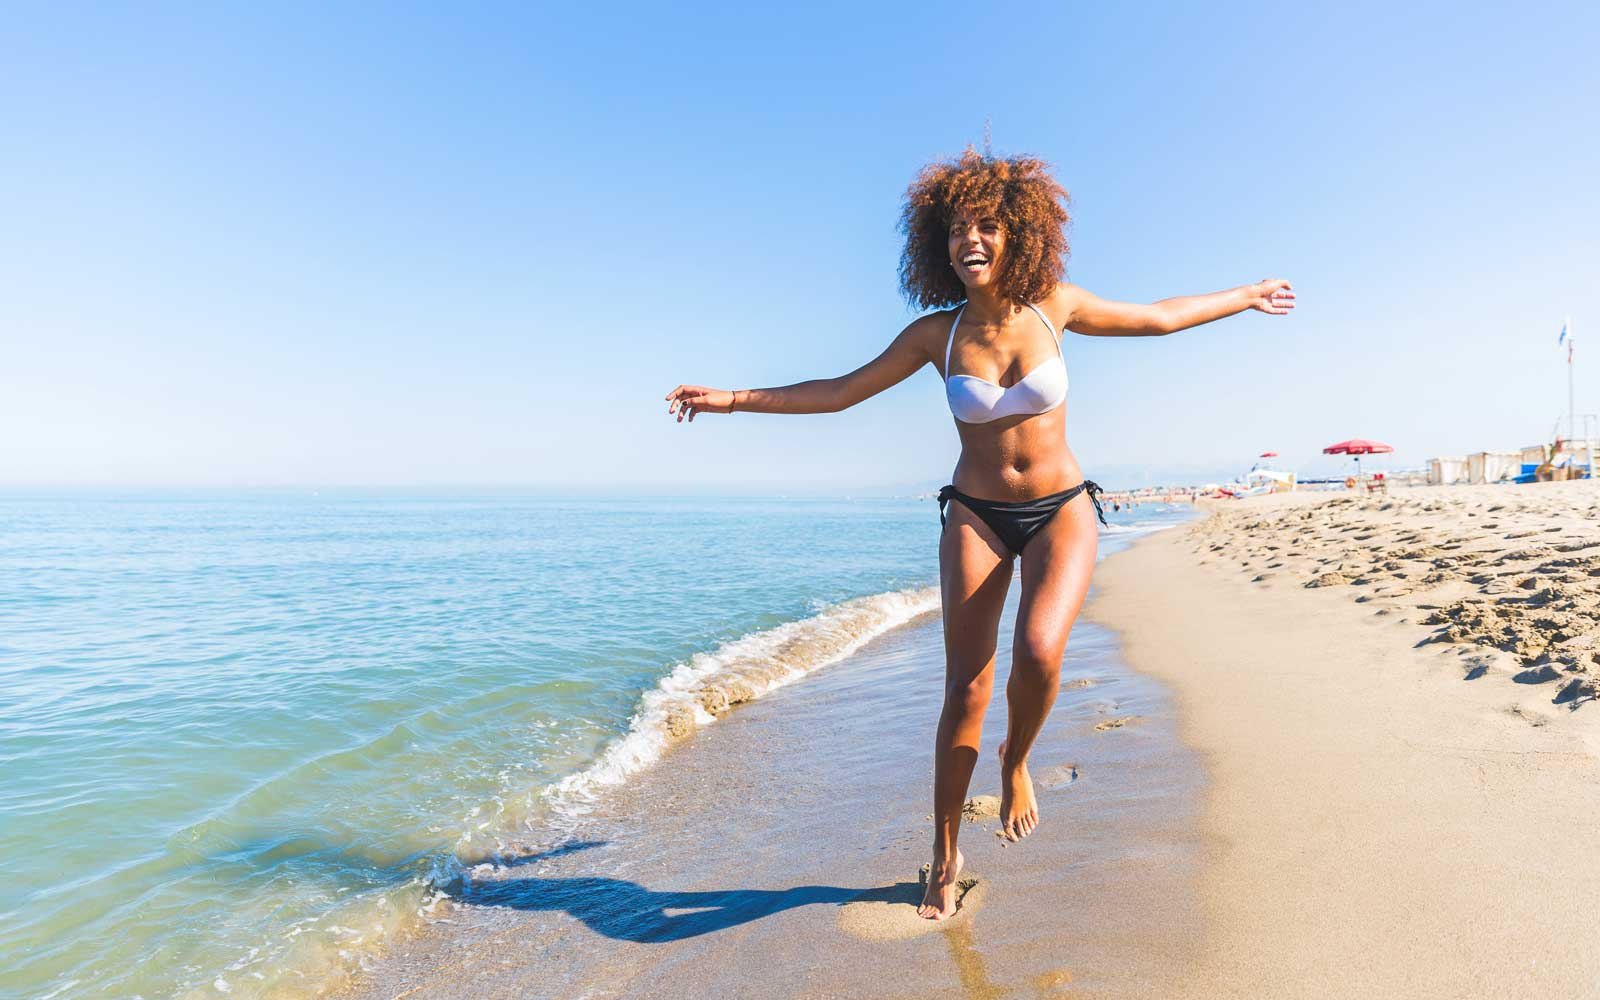 The Top Swimsuit Trends for 2018